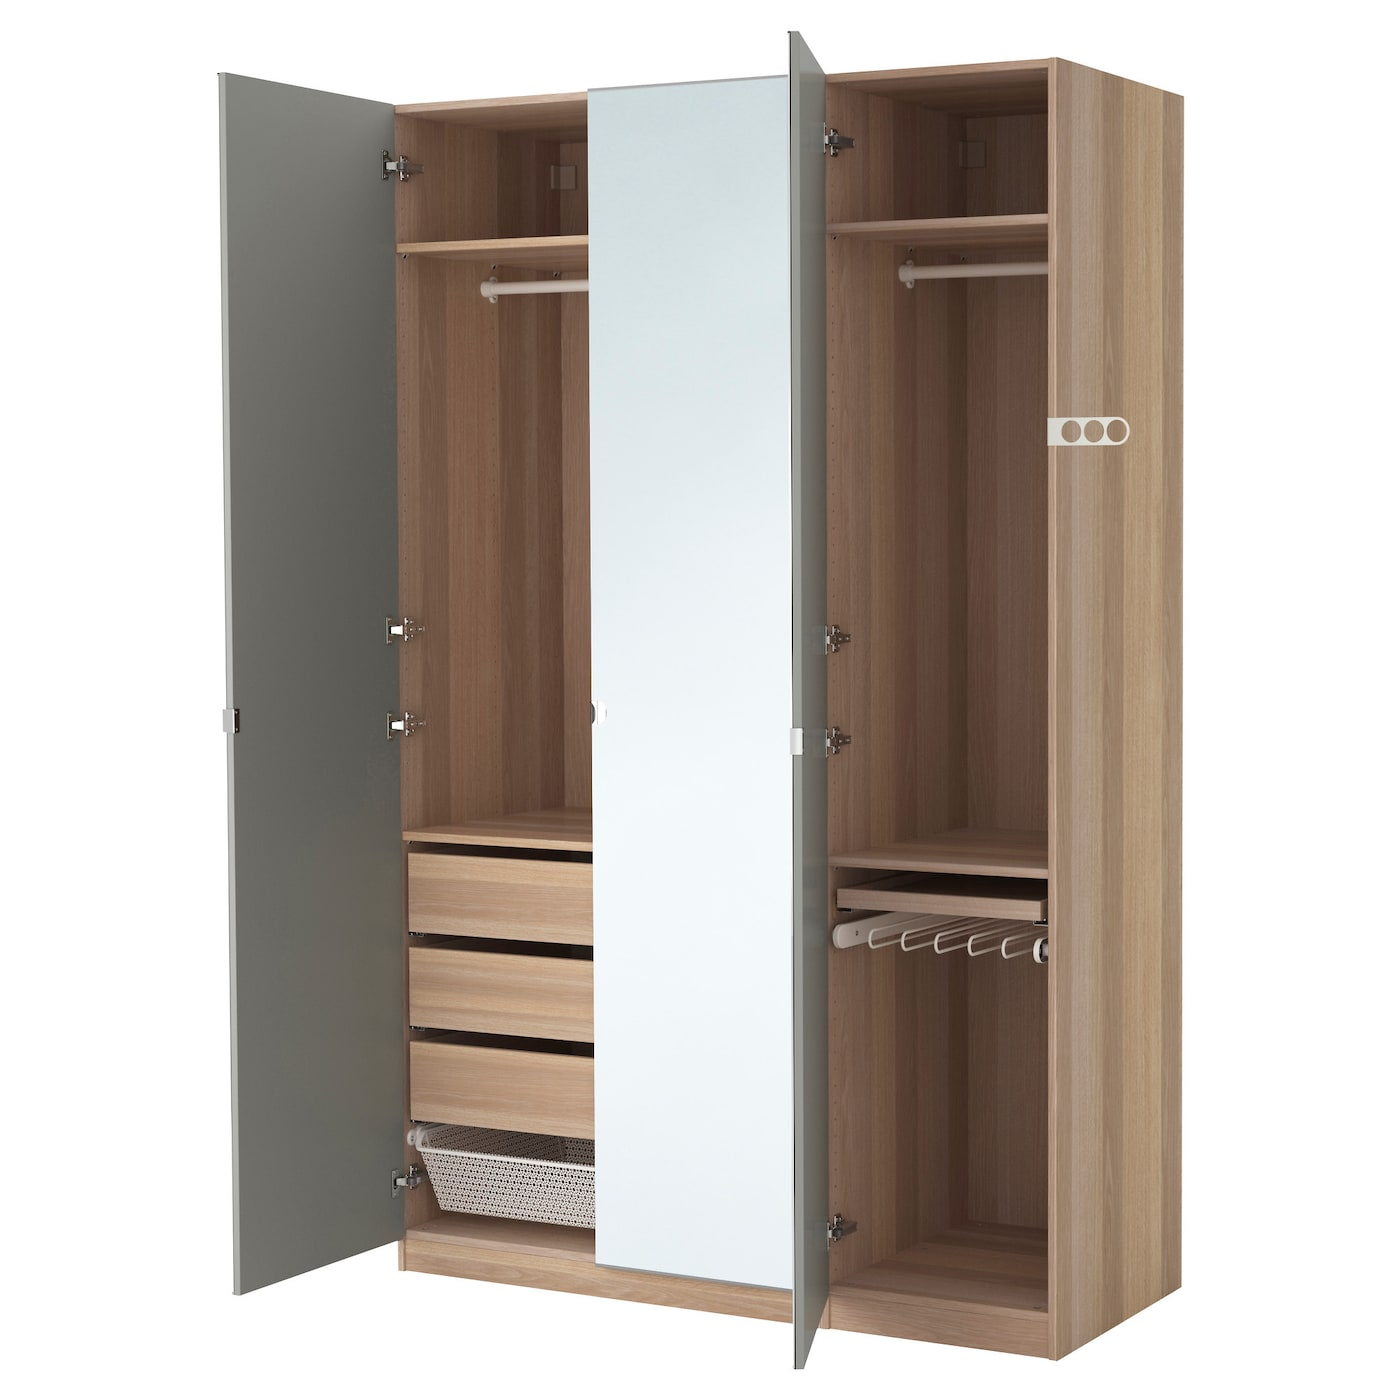 Pax wardrobe white stained oak effect vikedal mirror glass for Ikea porte miroir